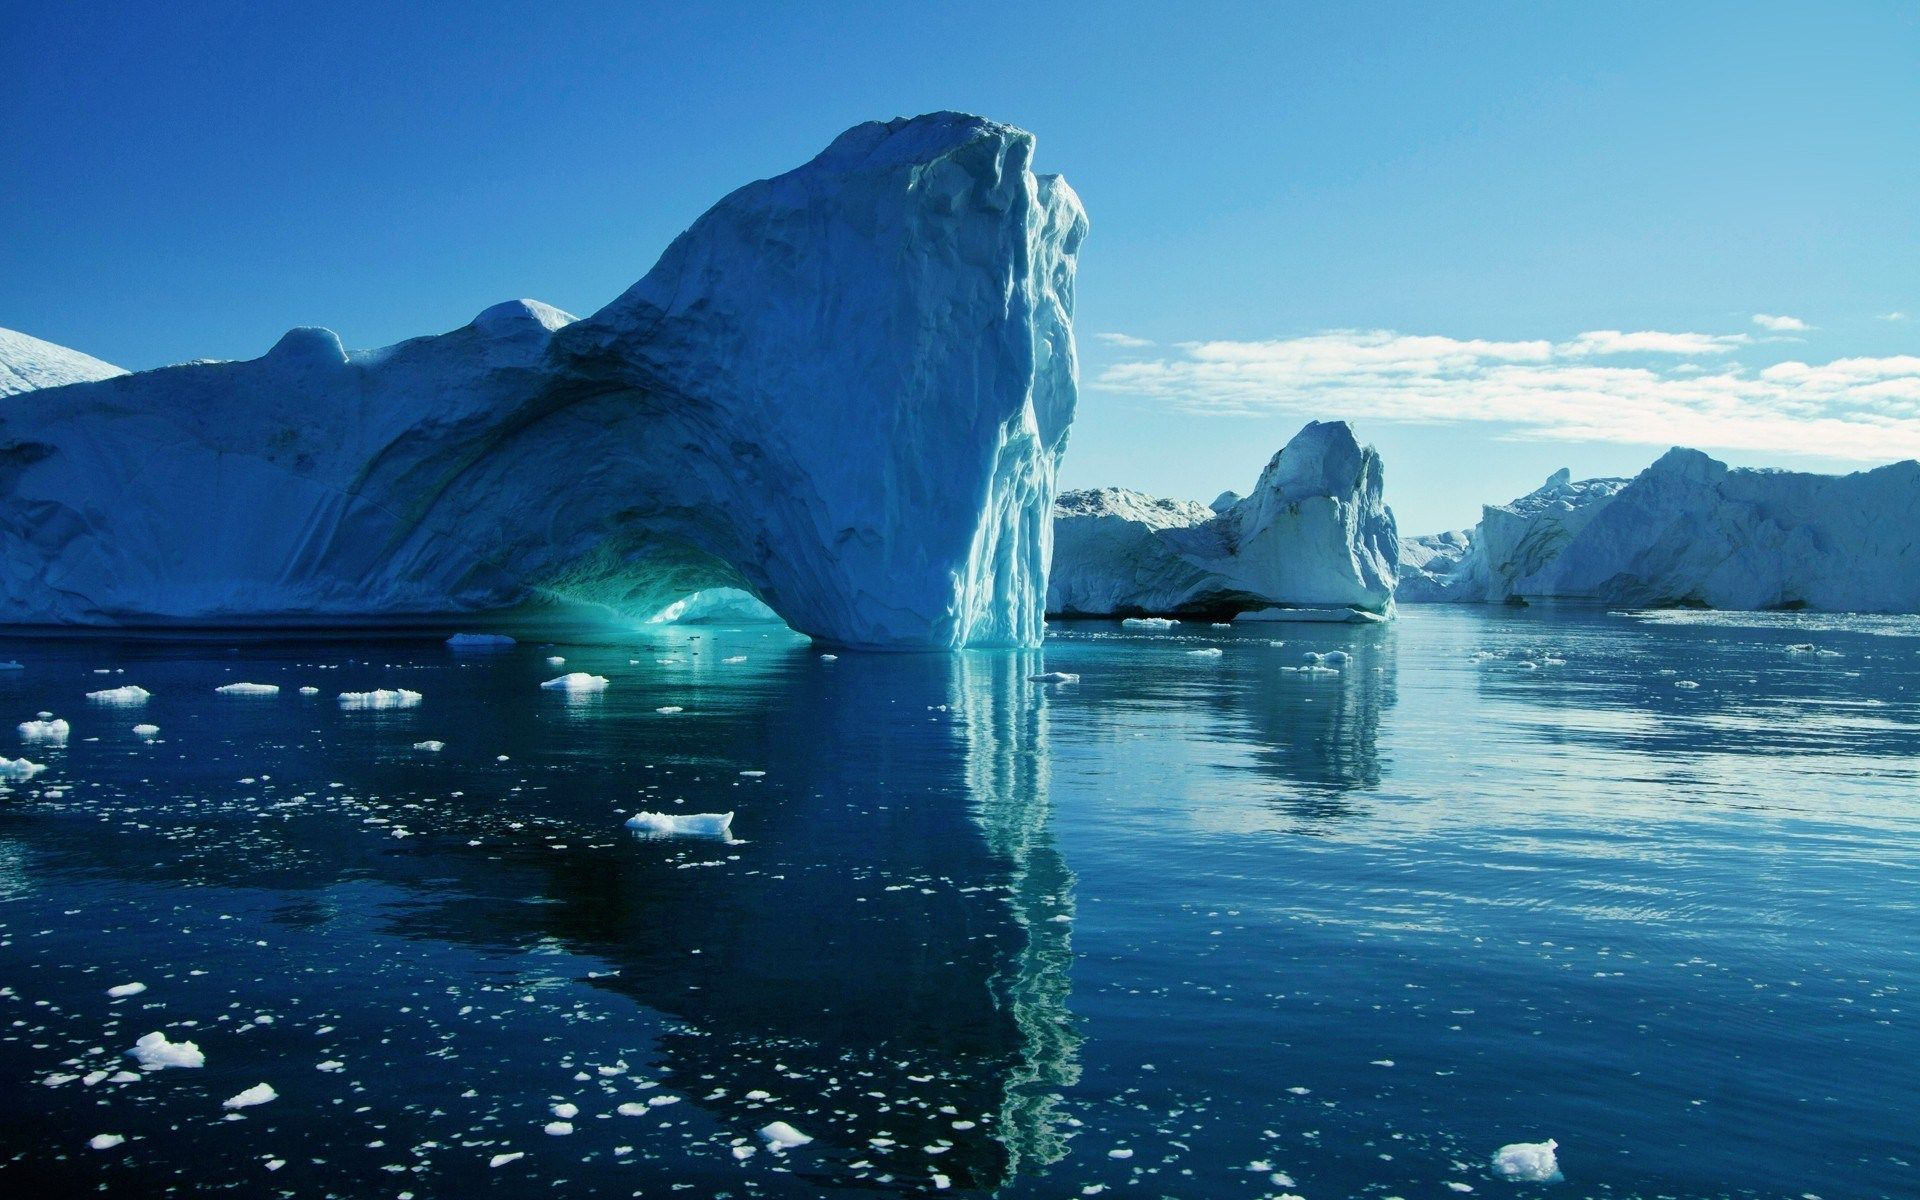 1920x1200 px iceberg backround - full hd wallpapers, photosnewt